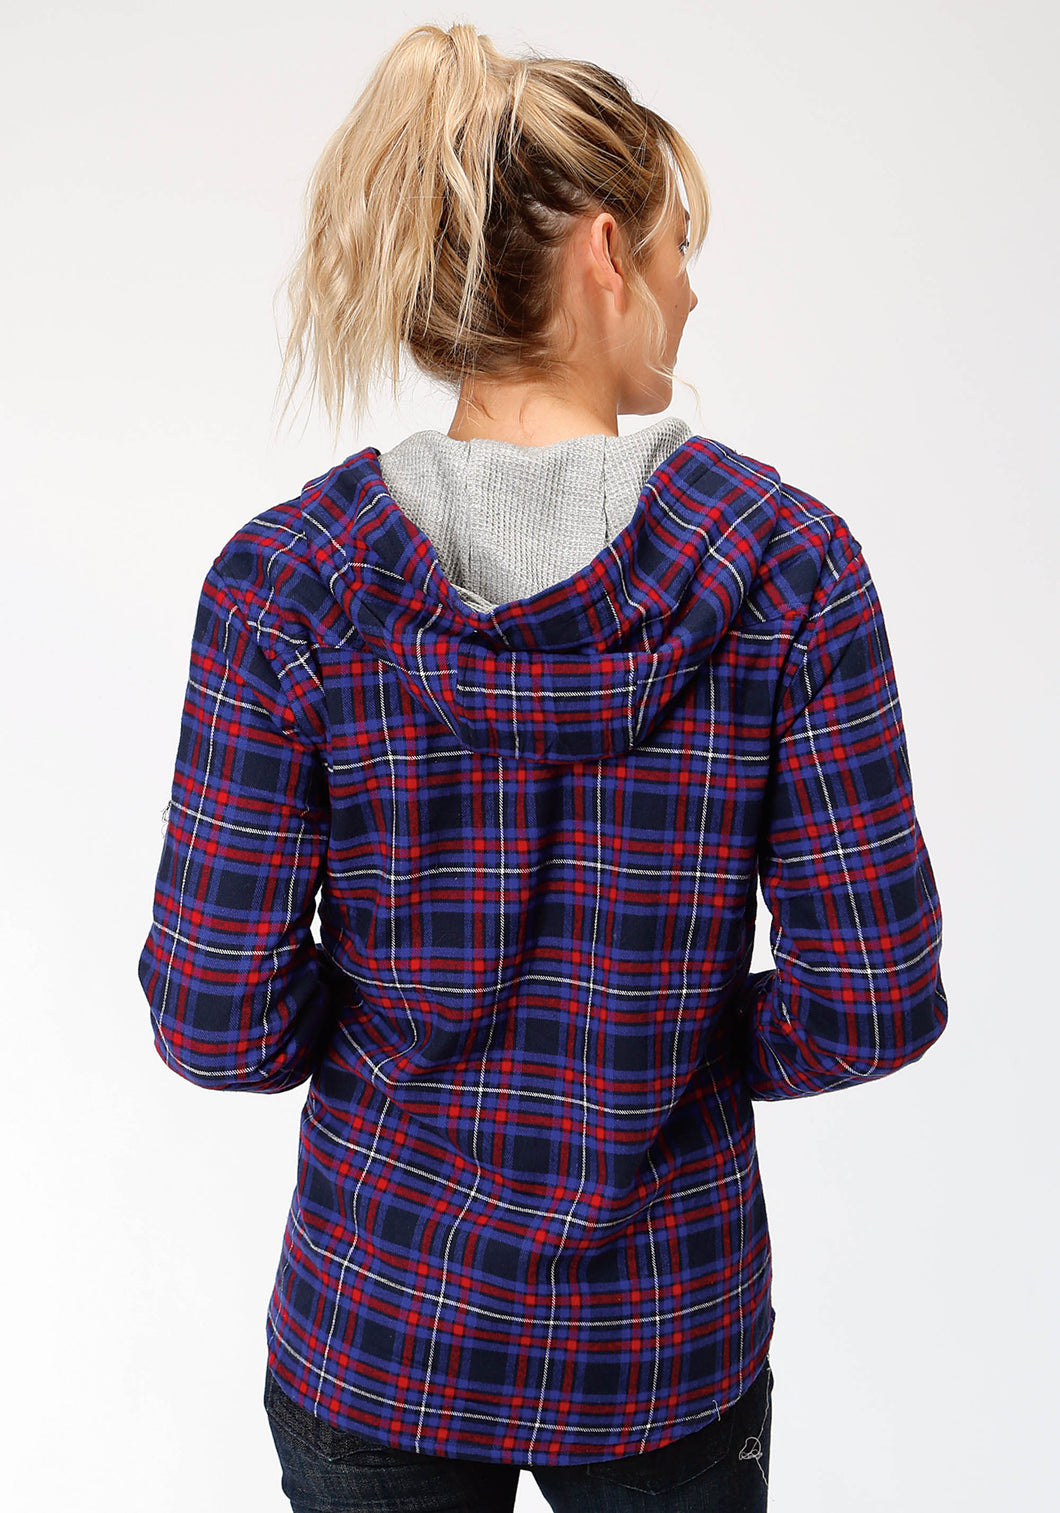 Outer Womens Jacket 4015 Royalred Flannel Plaid